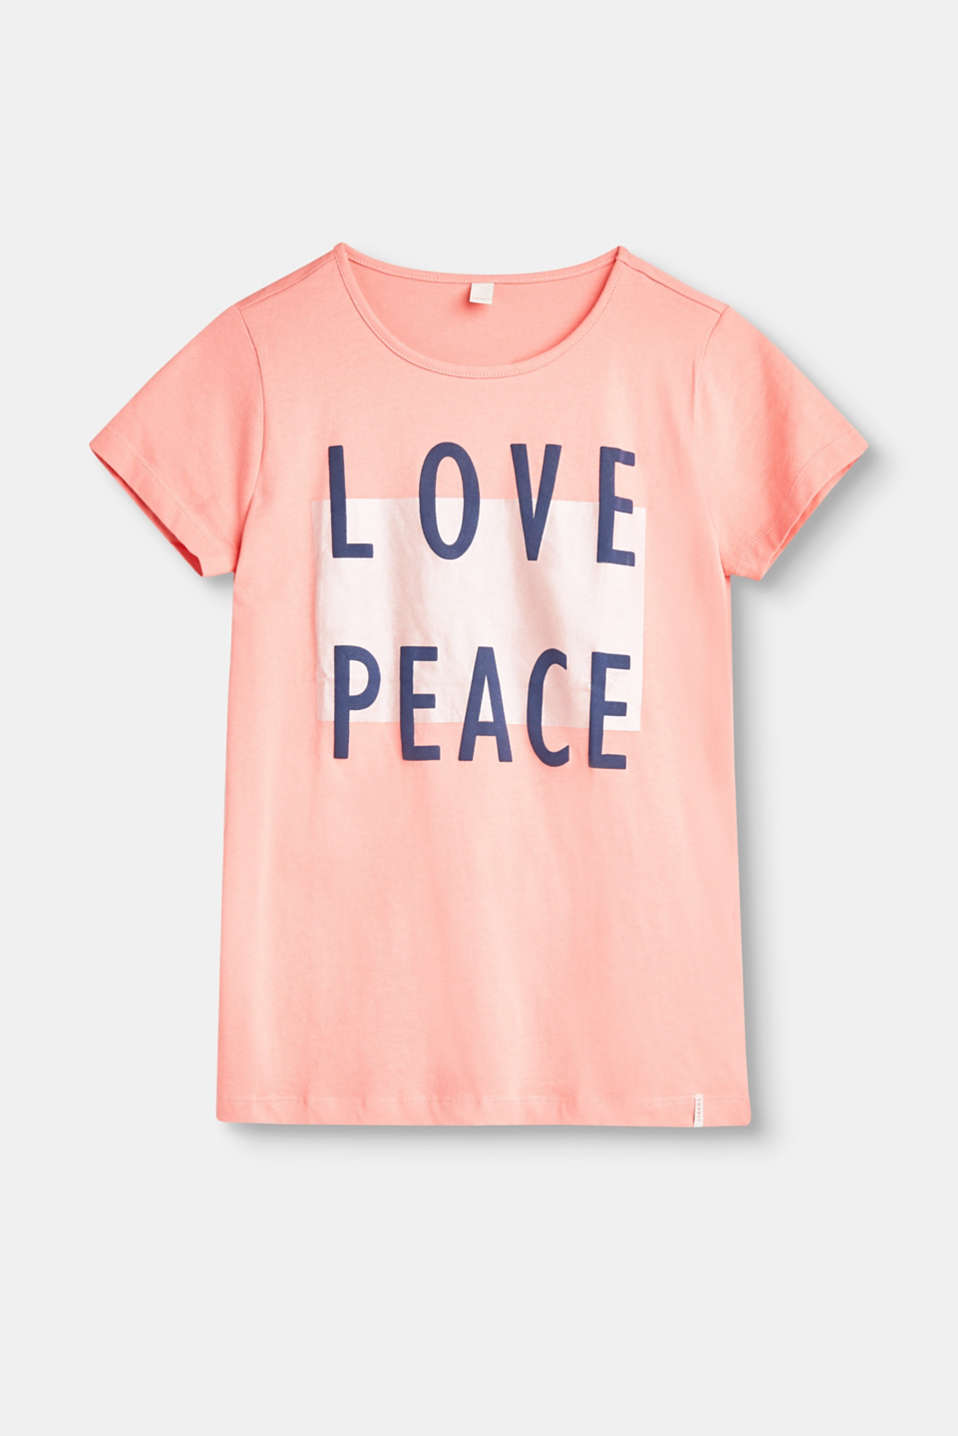 Love and Peace! The decorative statement on this T-shirt is particularly eye-catching against the glittering background.